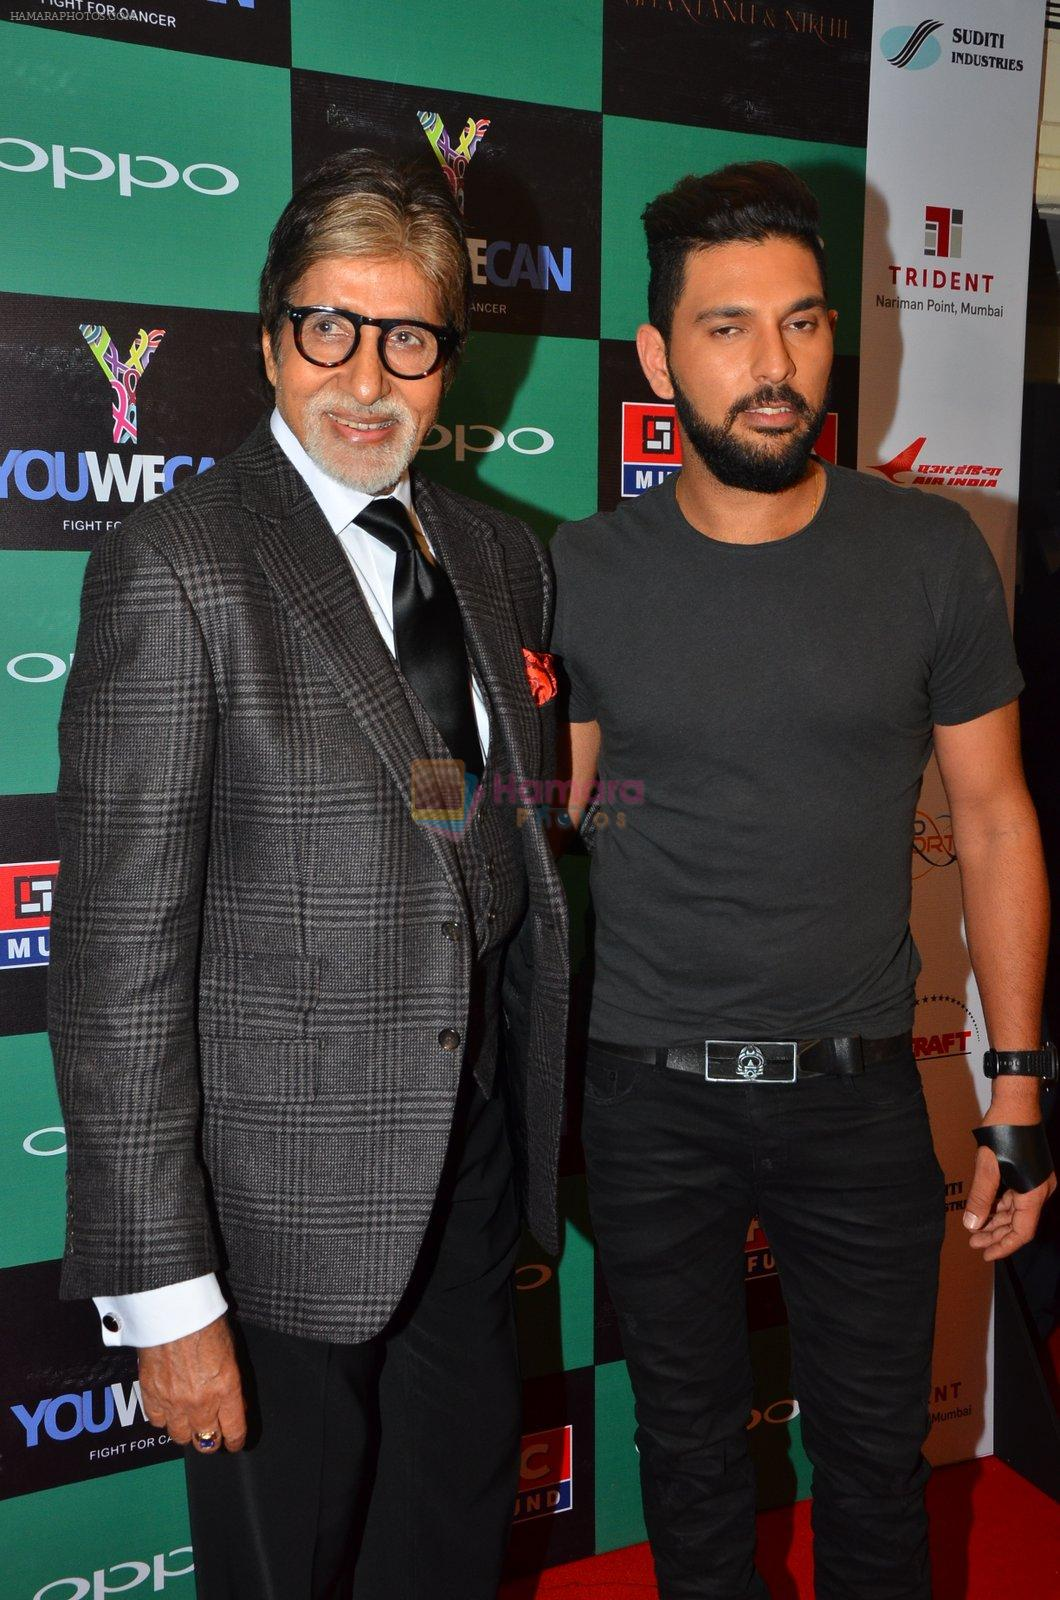 Amitabh Bachchan, Yuvraj Singh at You We Can Label launch with Shantanu Nikhil collection on 3rd Sept 2016